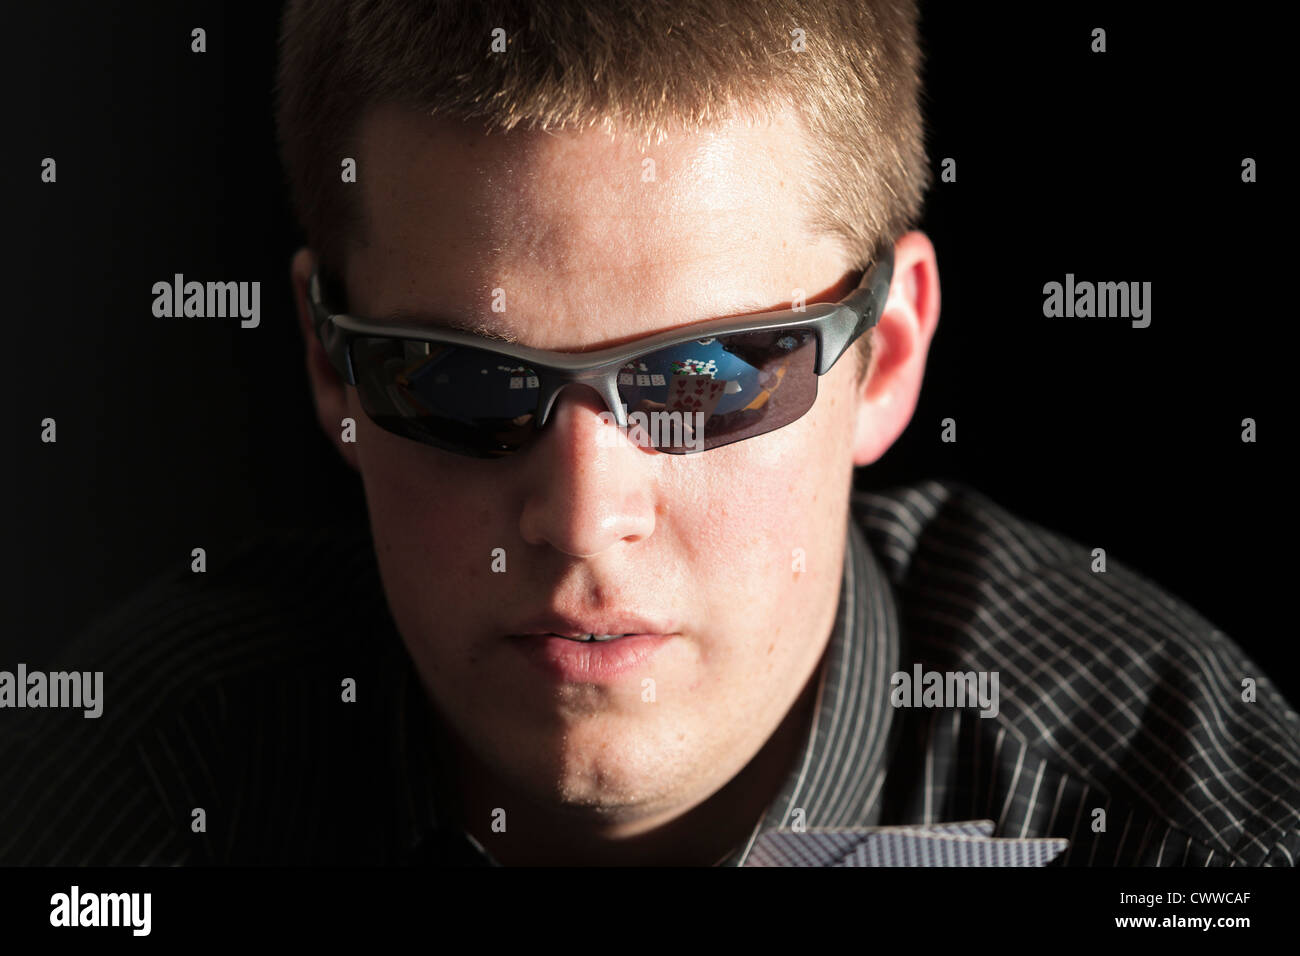 Reflection of cards and poker chips in the sunglasses of a young adult gambler - Stock Image